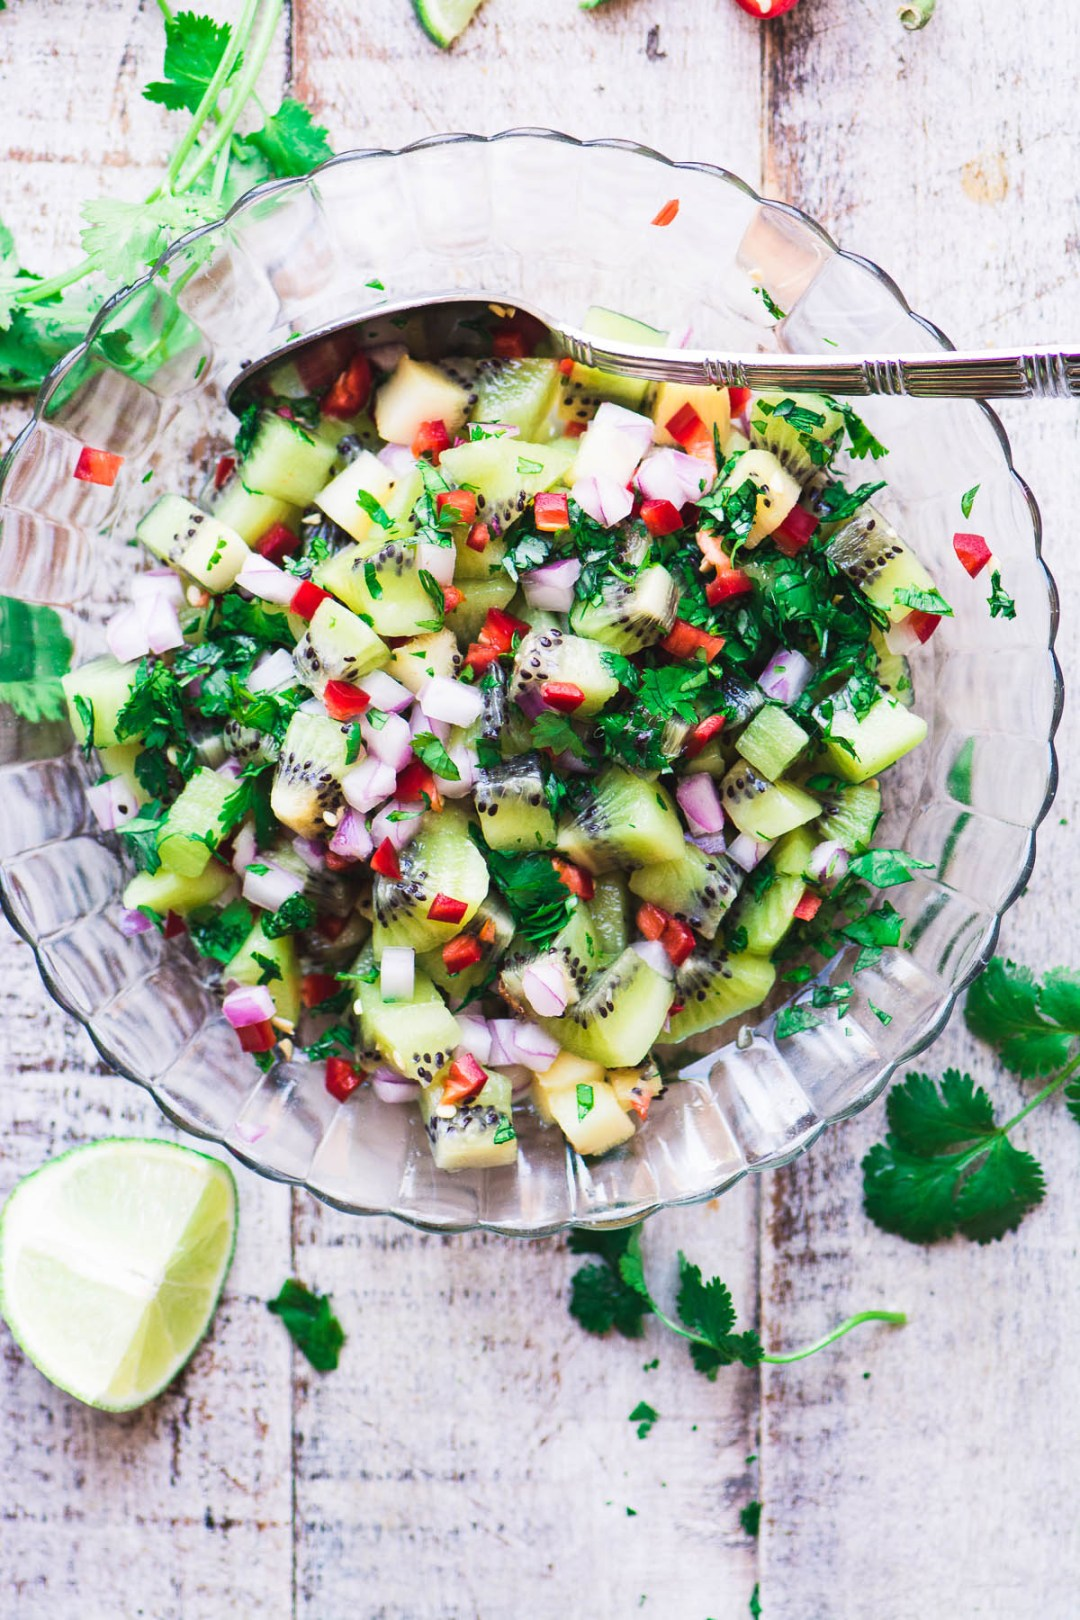 spicy kiwi salsa in a glass bowl on a wooden surface